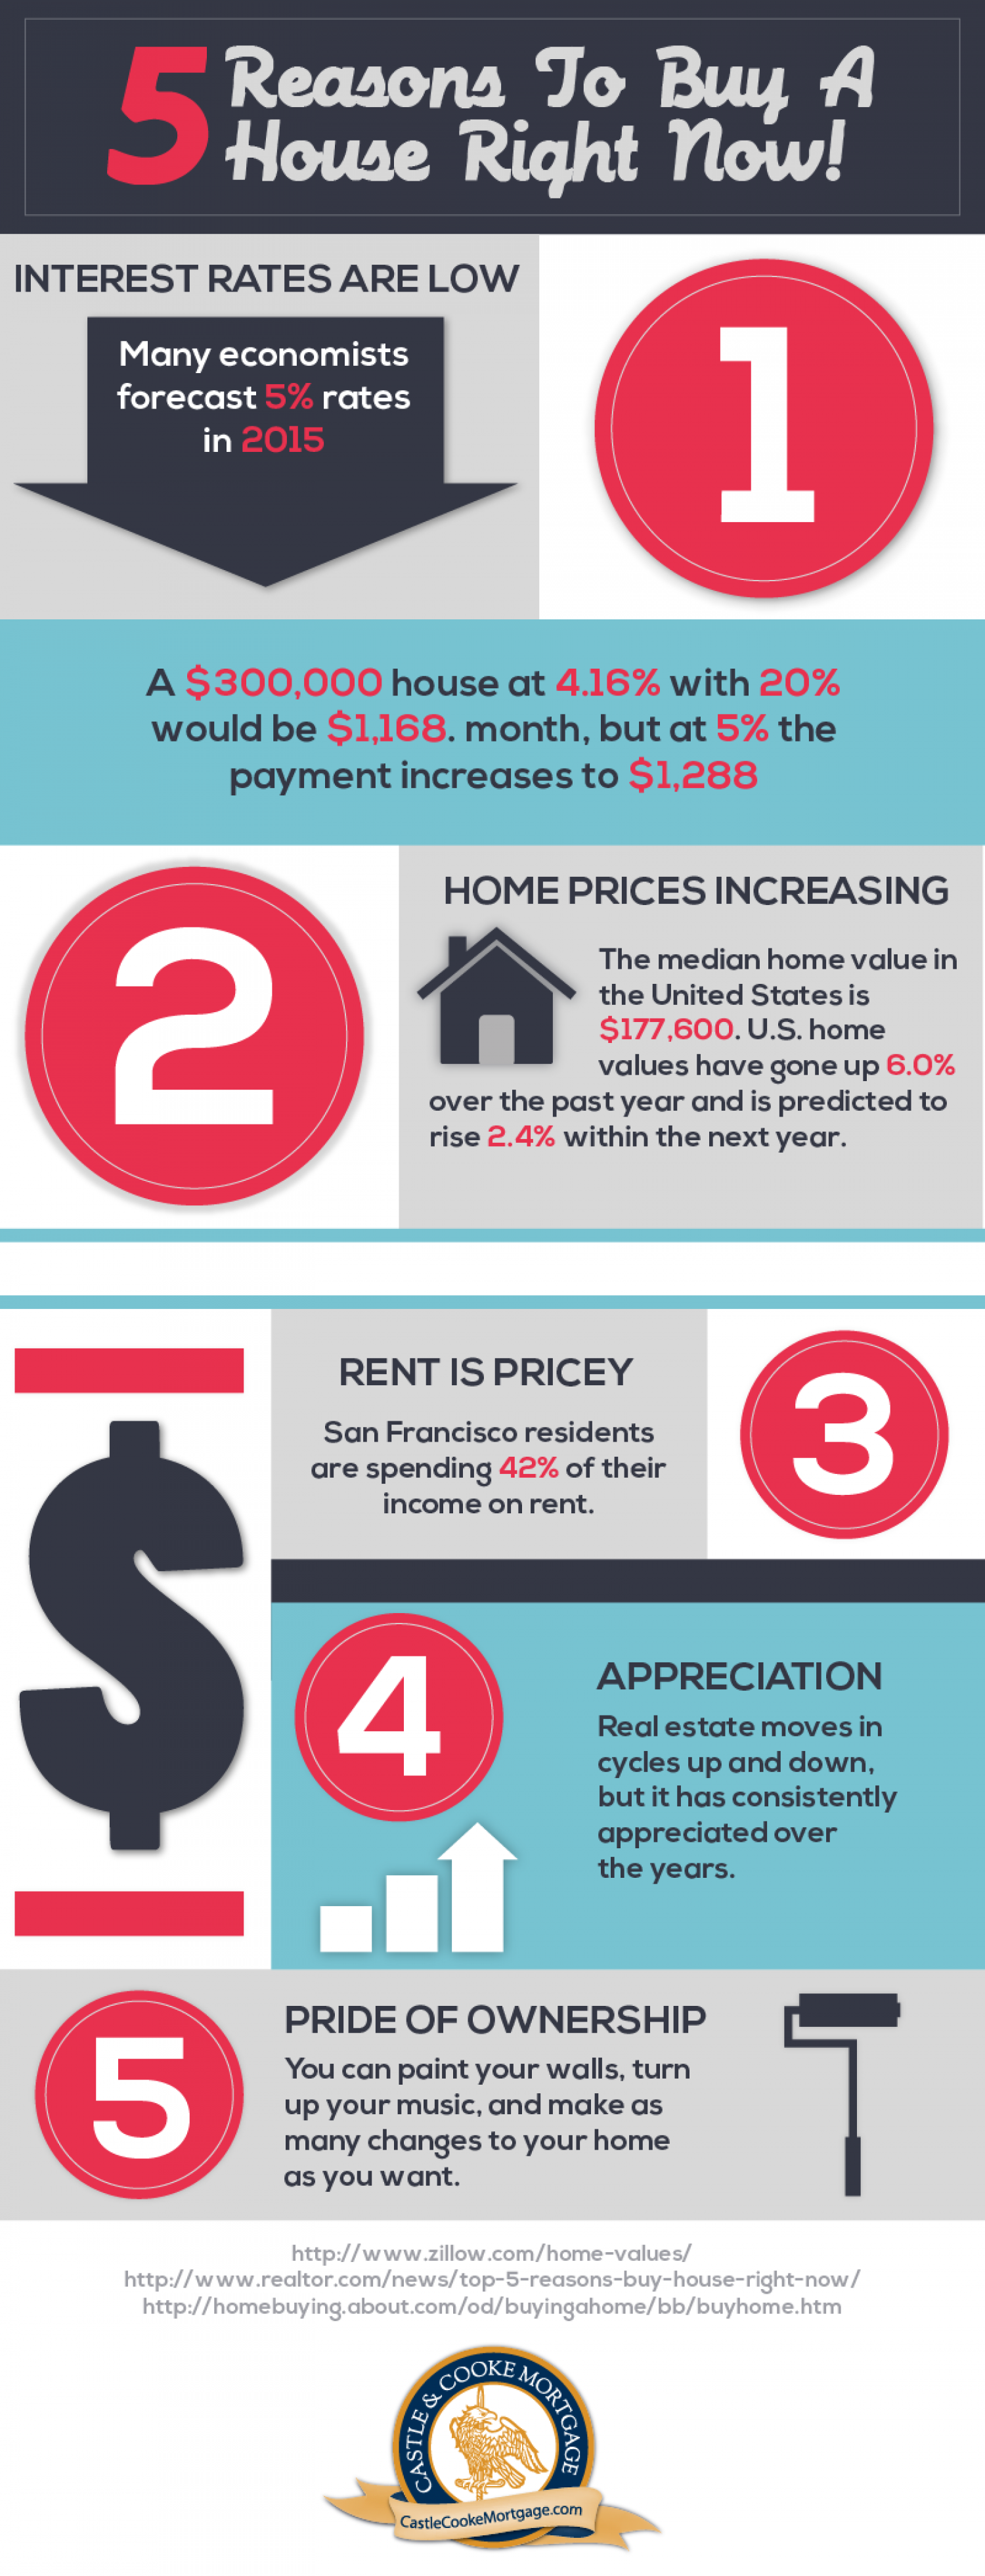 5 Reasons To Buy A House Right Now